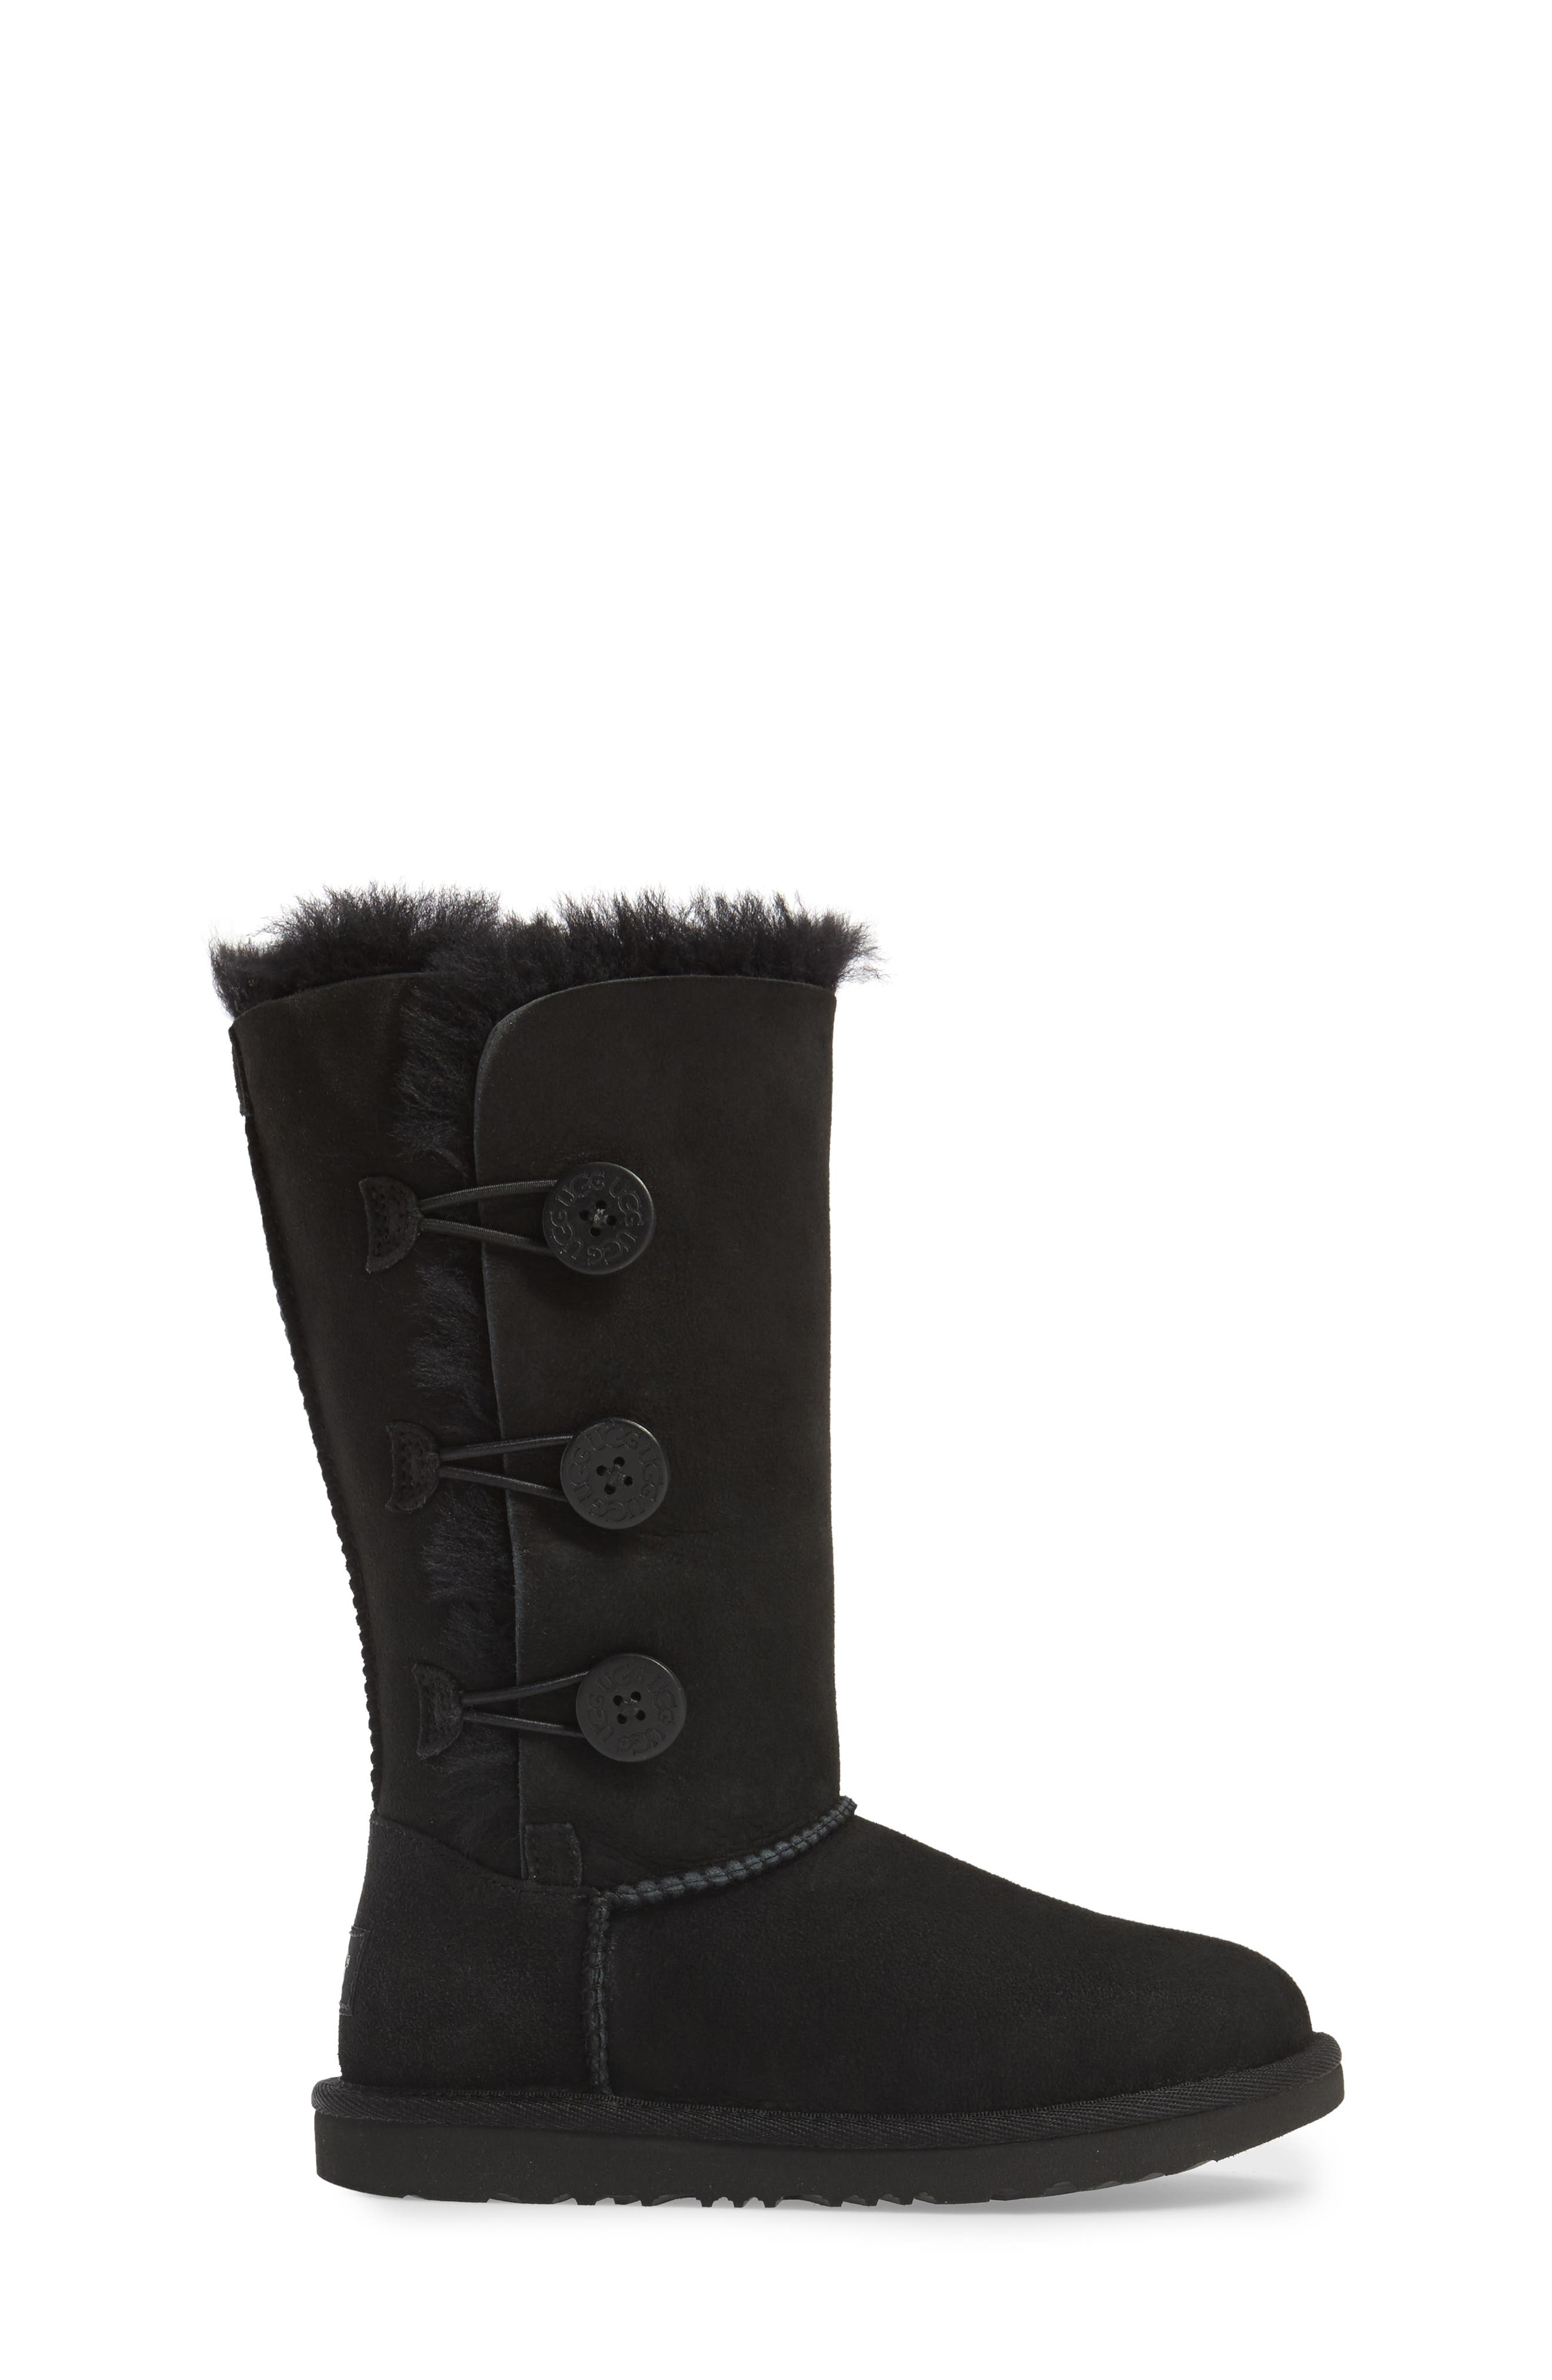 Bailey Button Triplet II Genuine Shearling Boot,                             Alternate thumbnail 3, color,                             BLACK SUEDE